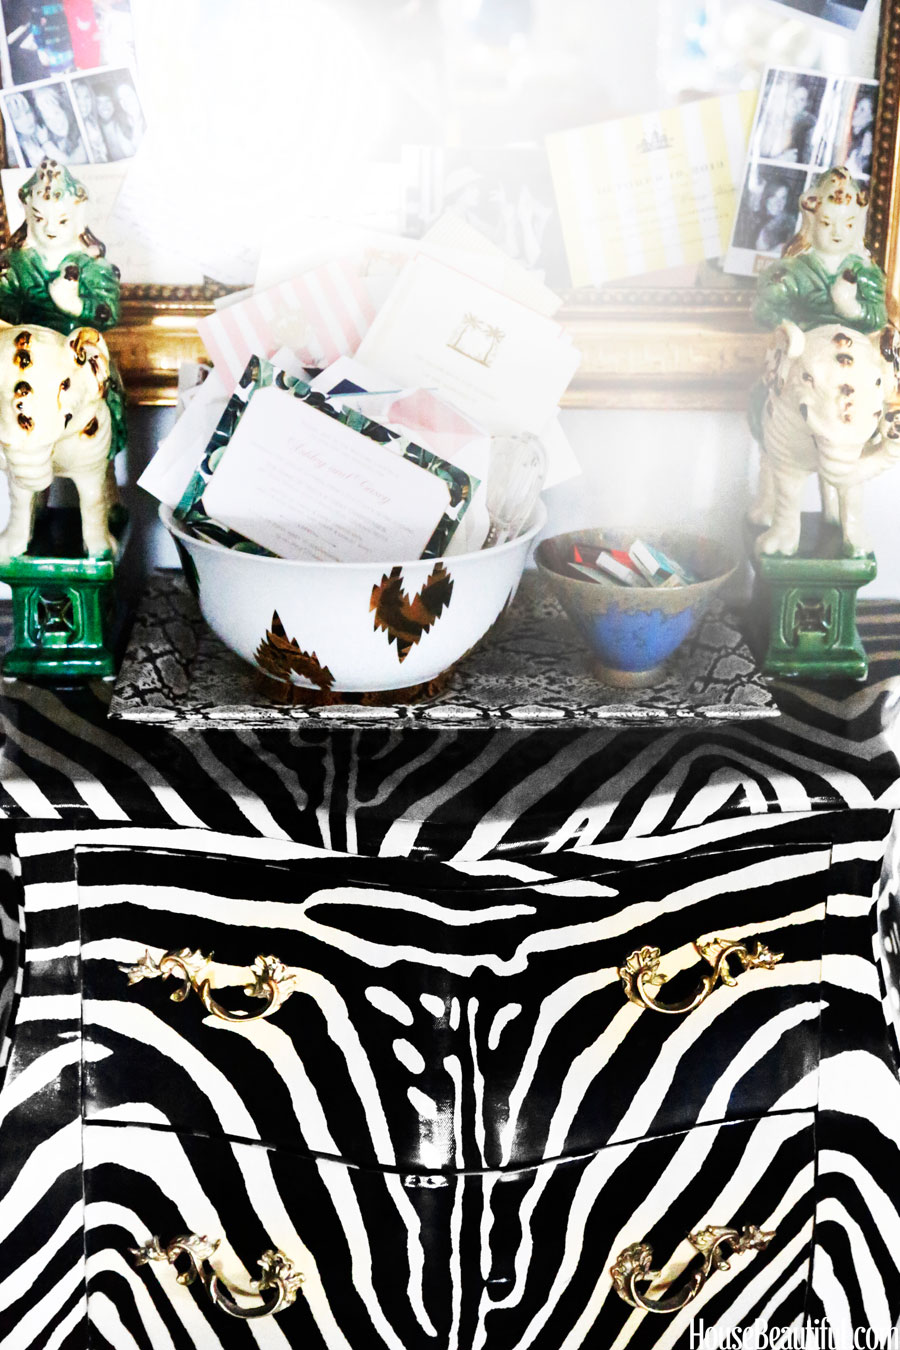 Lindsey Coral Harper's zebra and malachite accessories